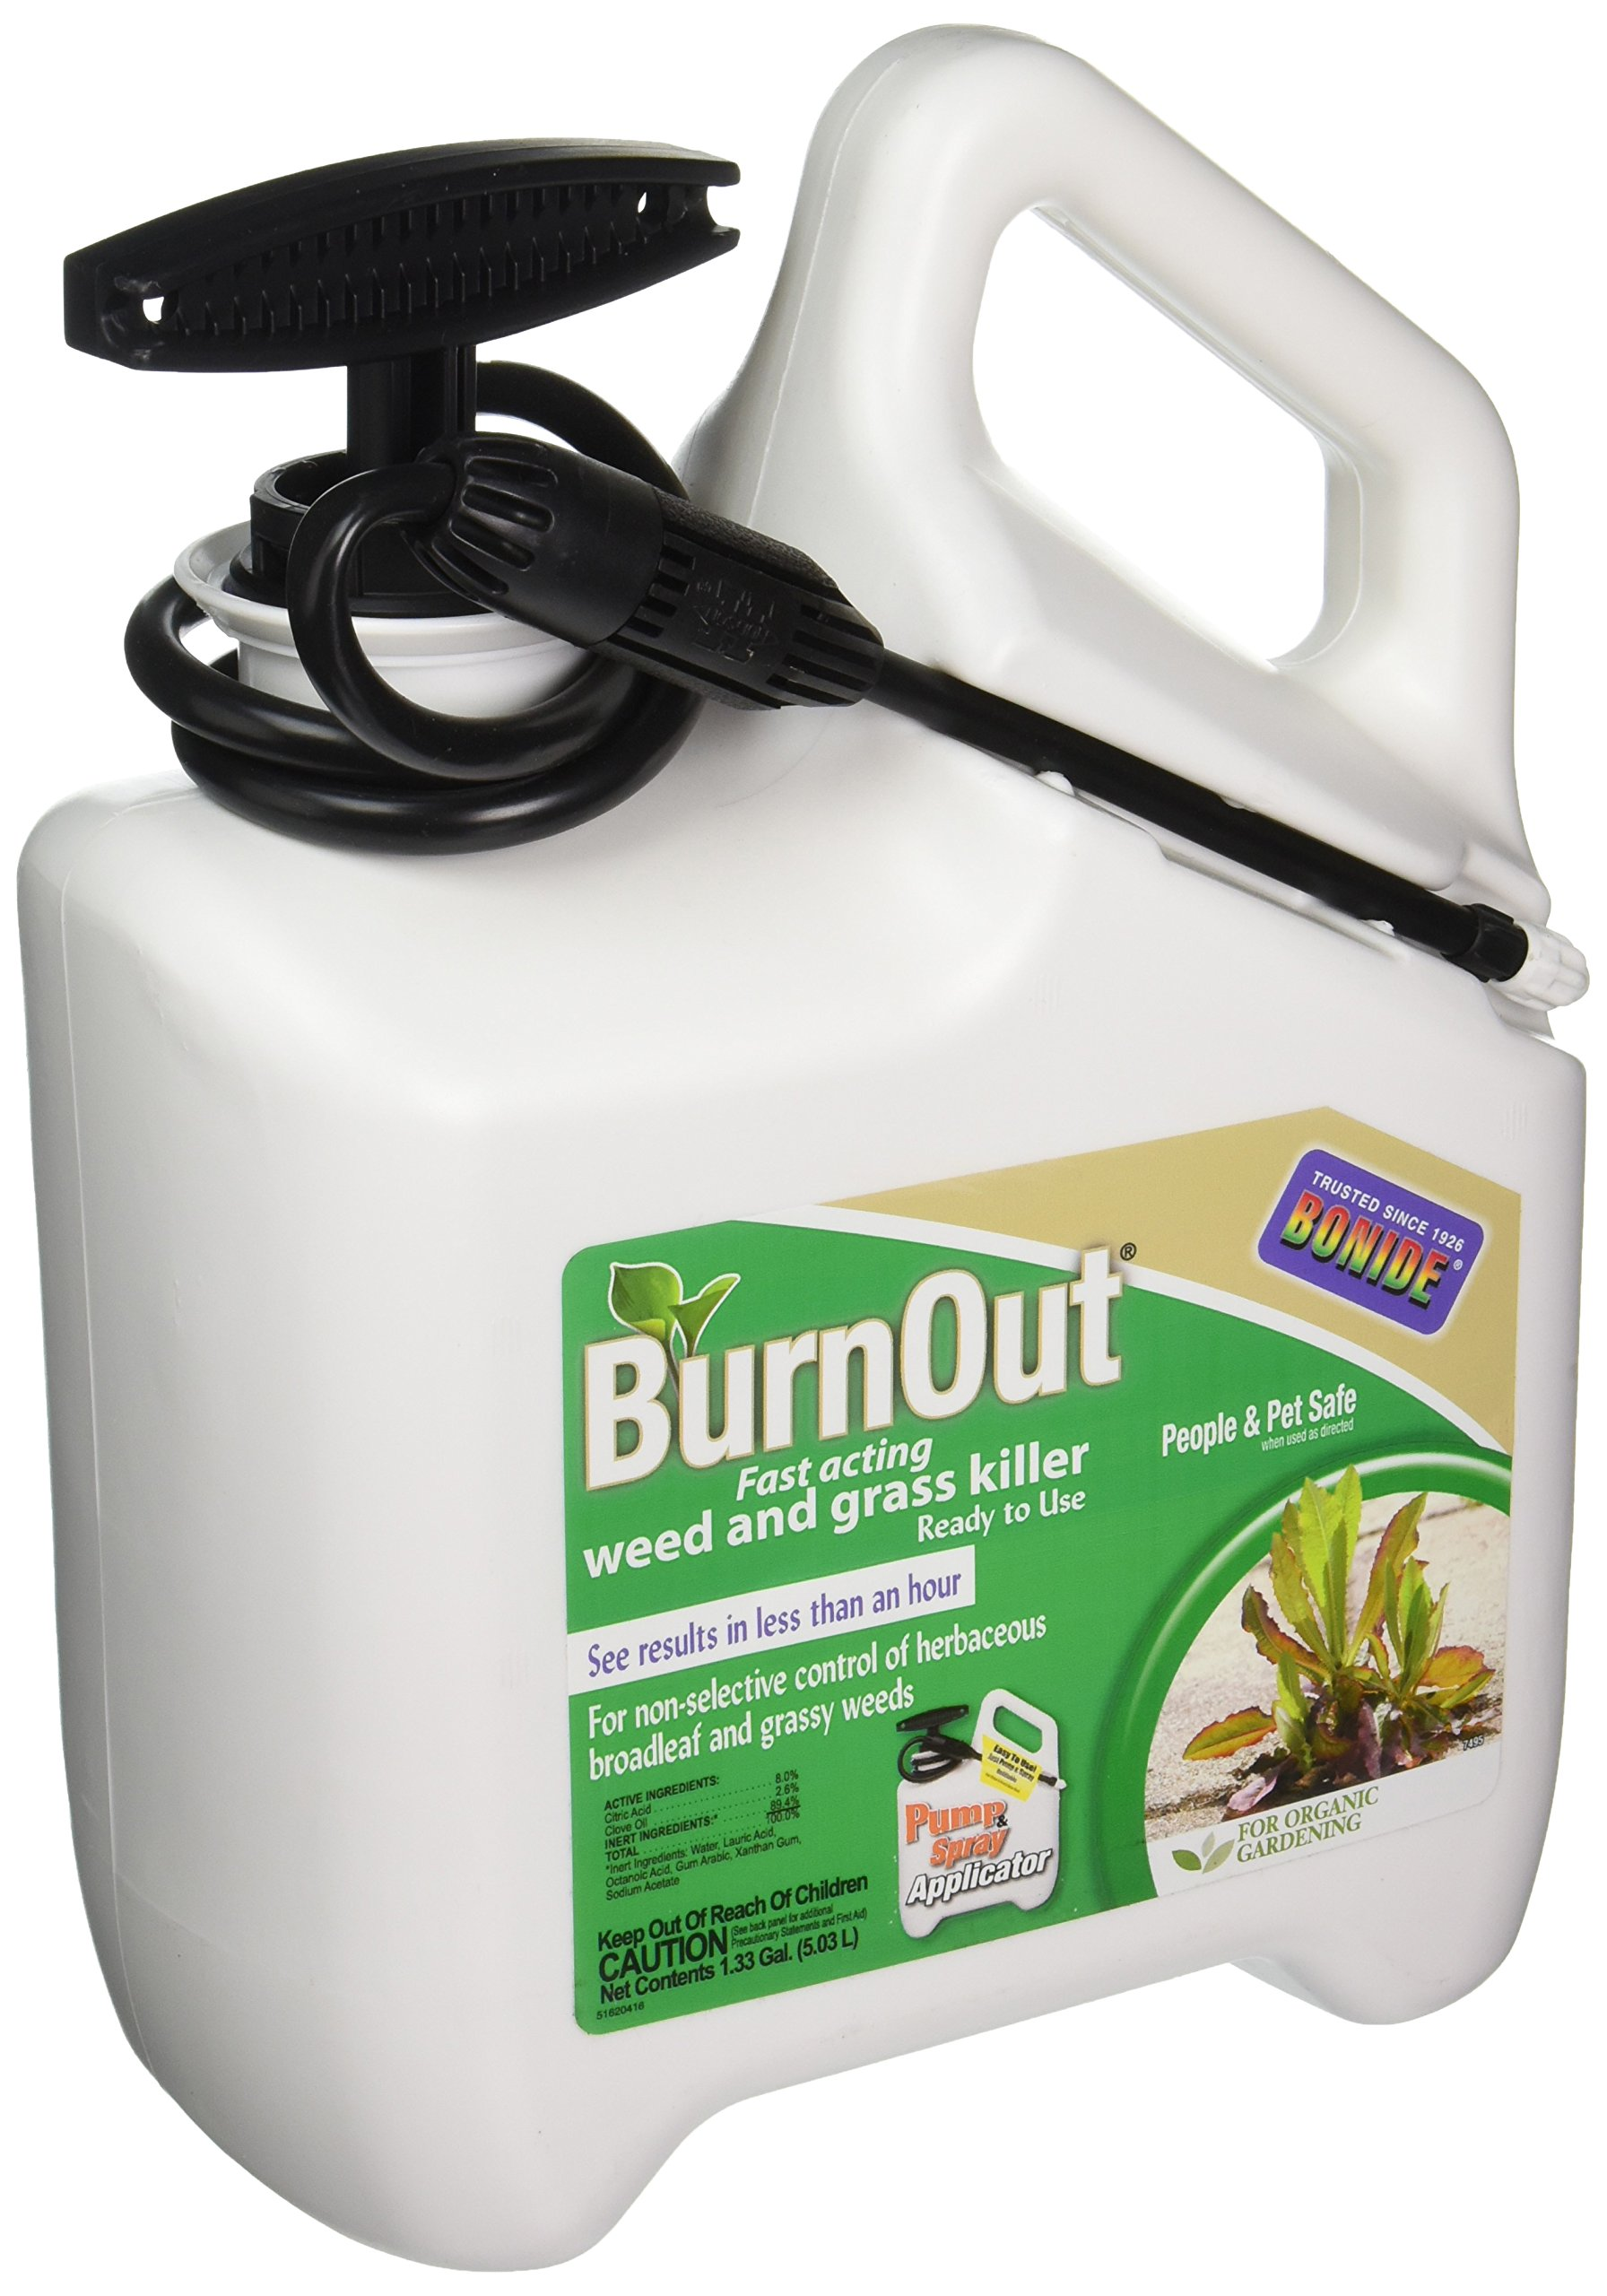 Bonide PRODUCTS 7495 Ready-to-Use BurnOut, 1.33 gallon